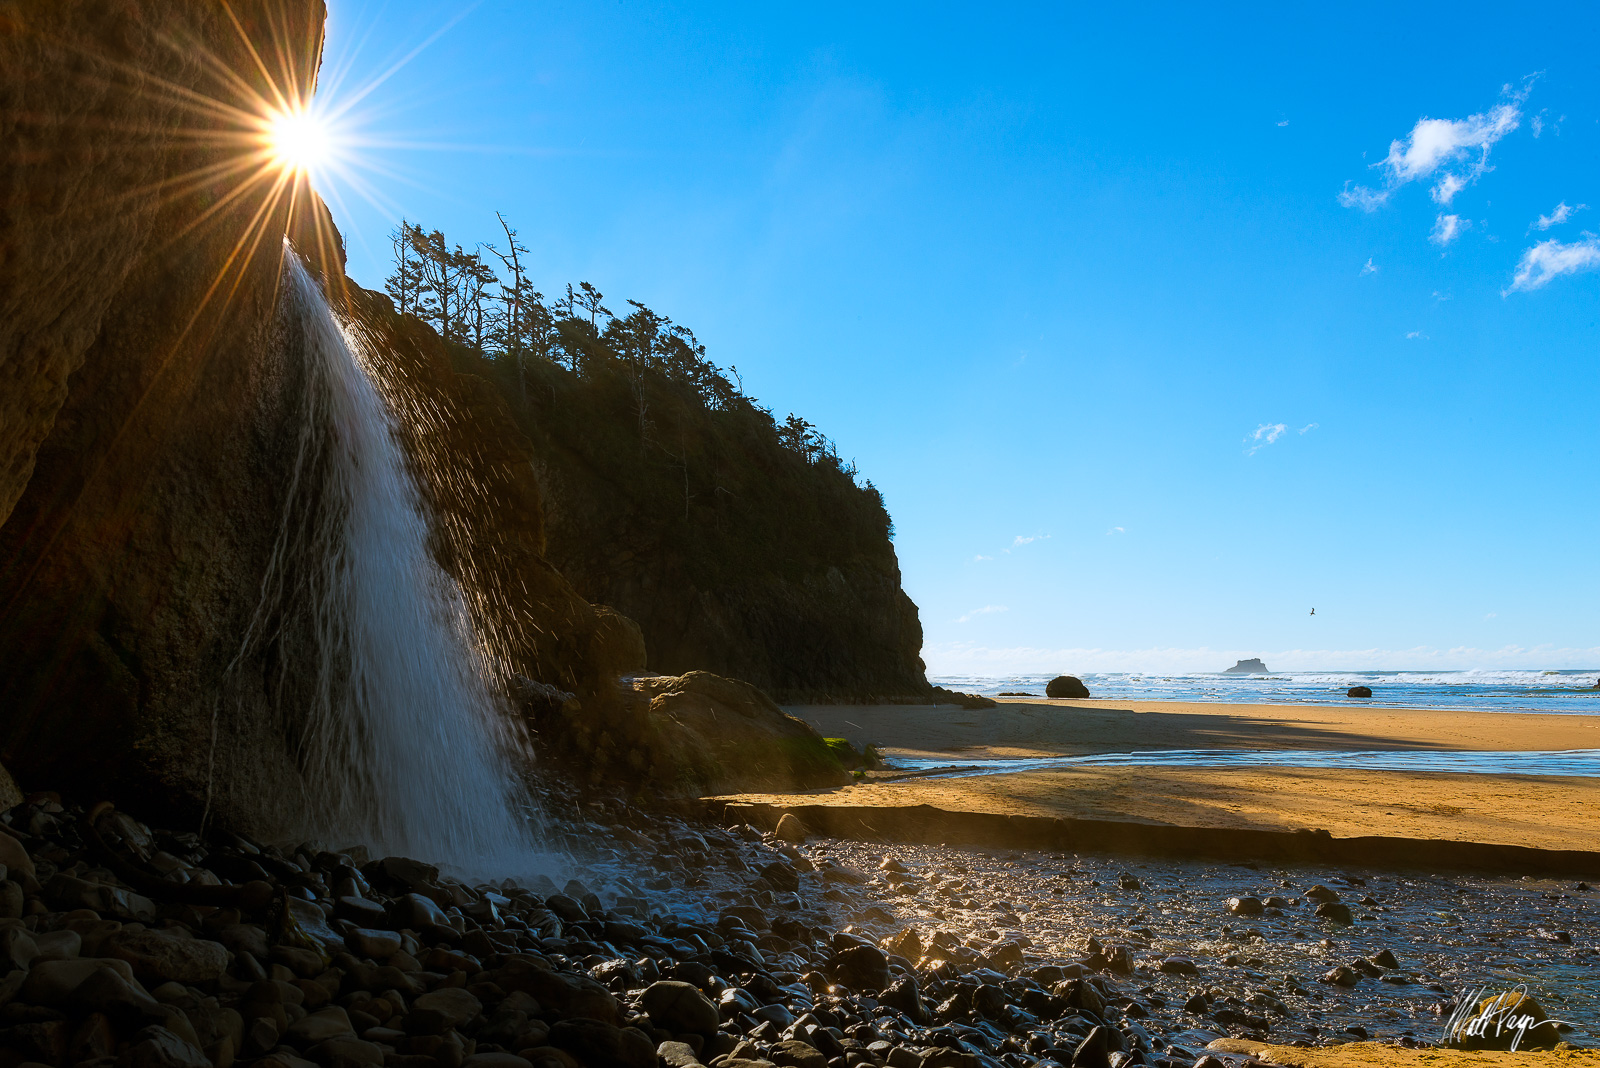 Beach, Coast, Hug Point State Park, Landscape, Ocean, Oregon, Sun, Sunstar, Water, Waterfall, rocks, photo